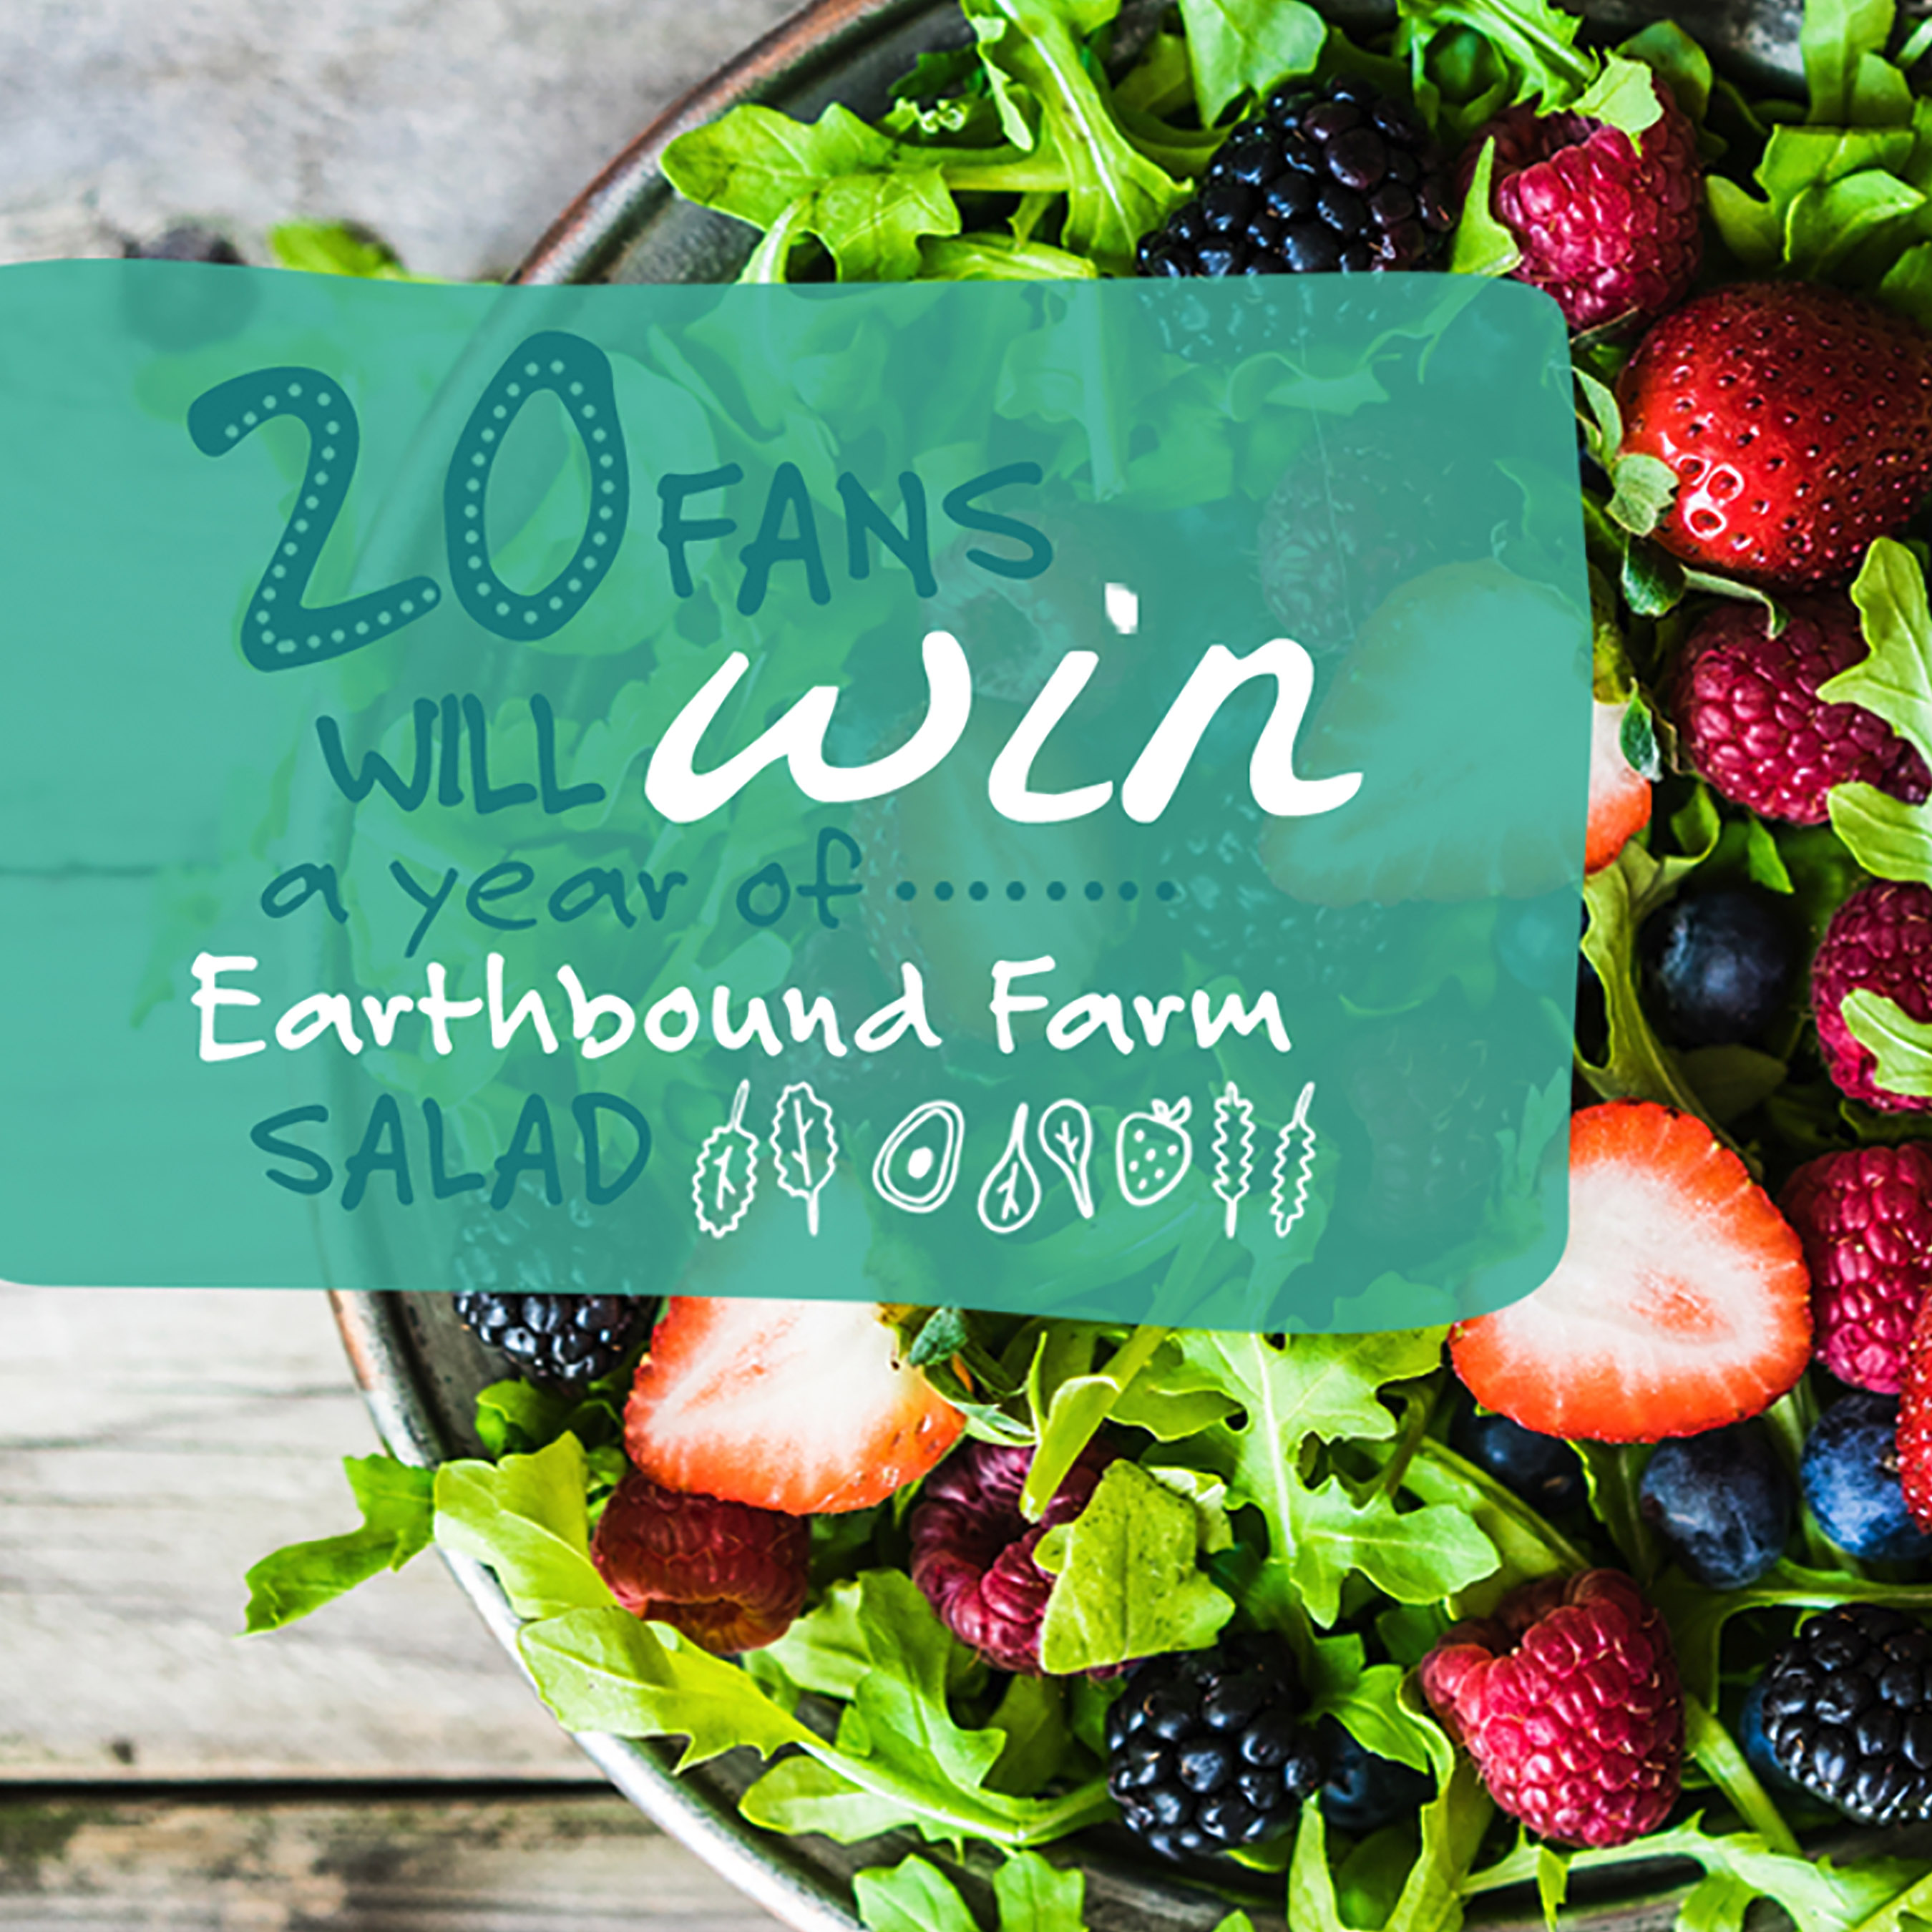 Kick off your week with #SaladSunday for a chance to win a year supply of Earthbound Farm Products!